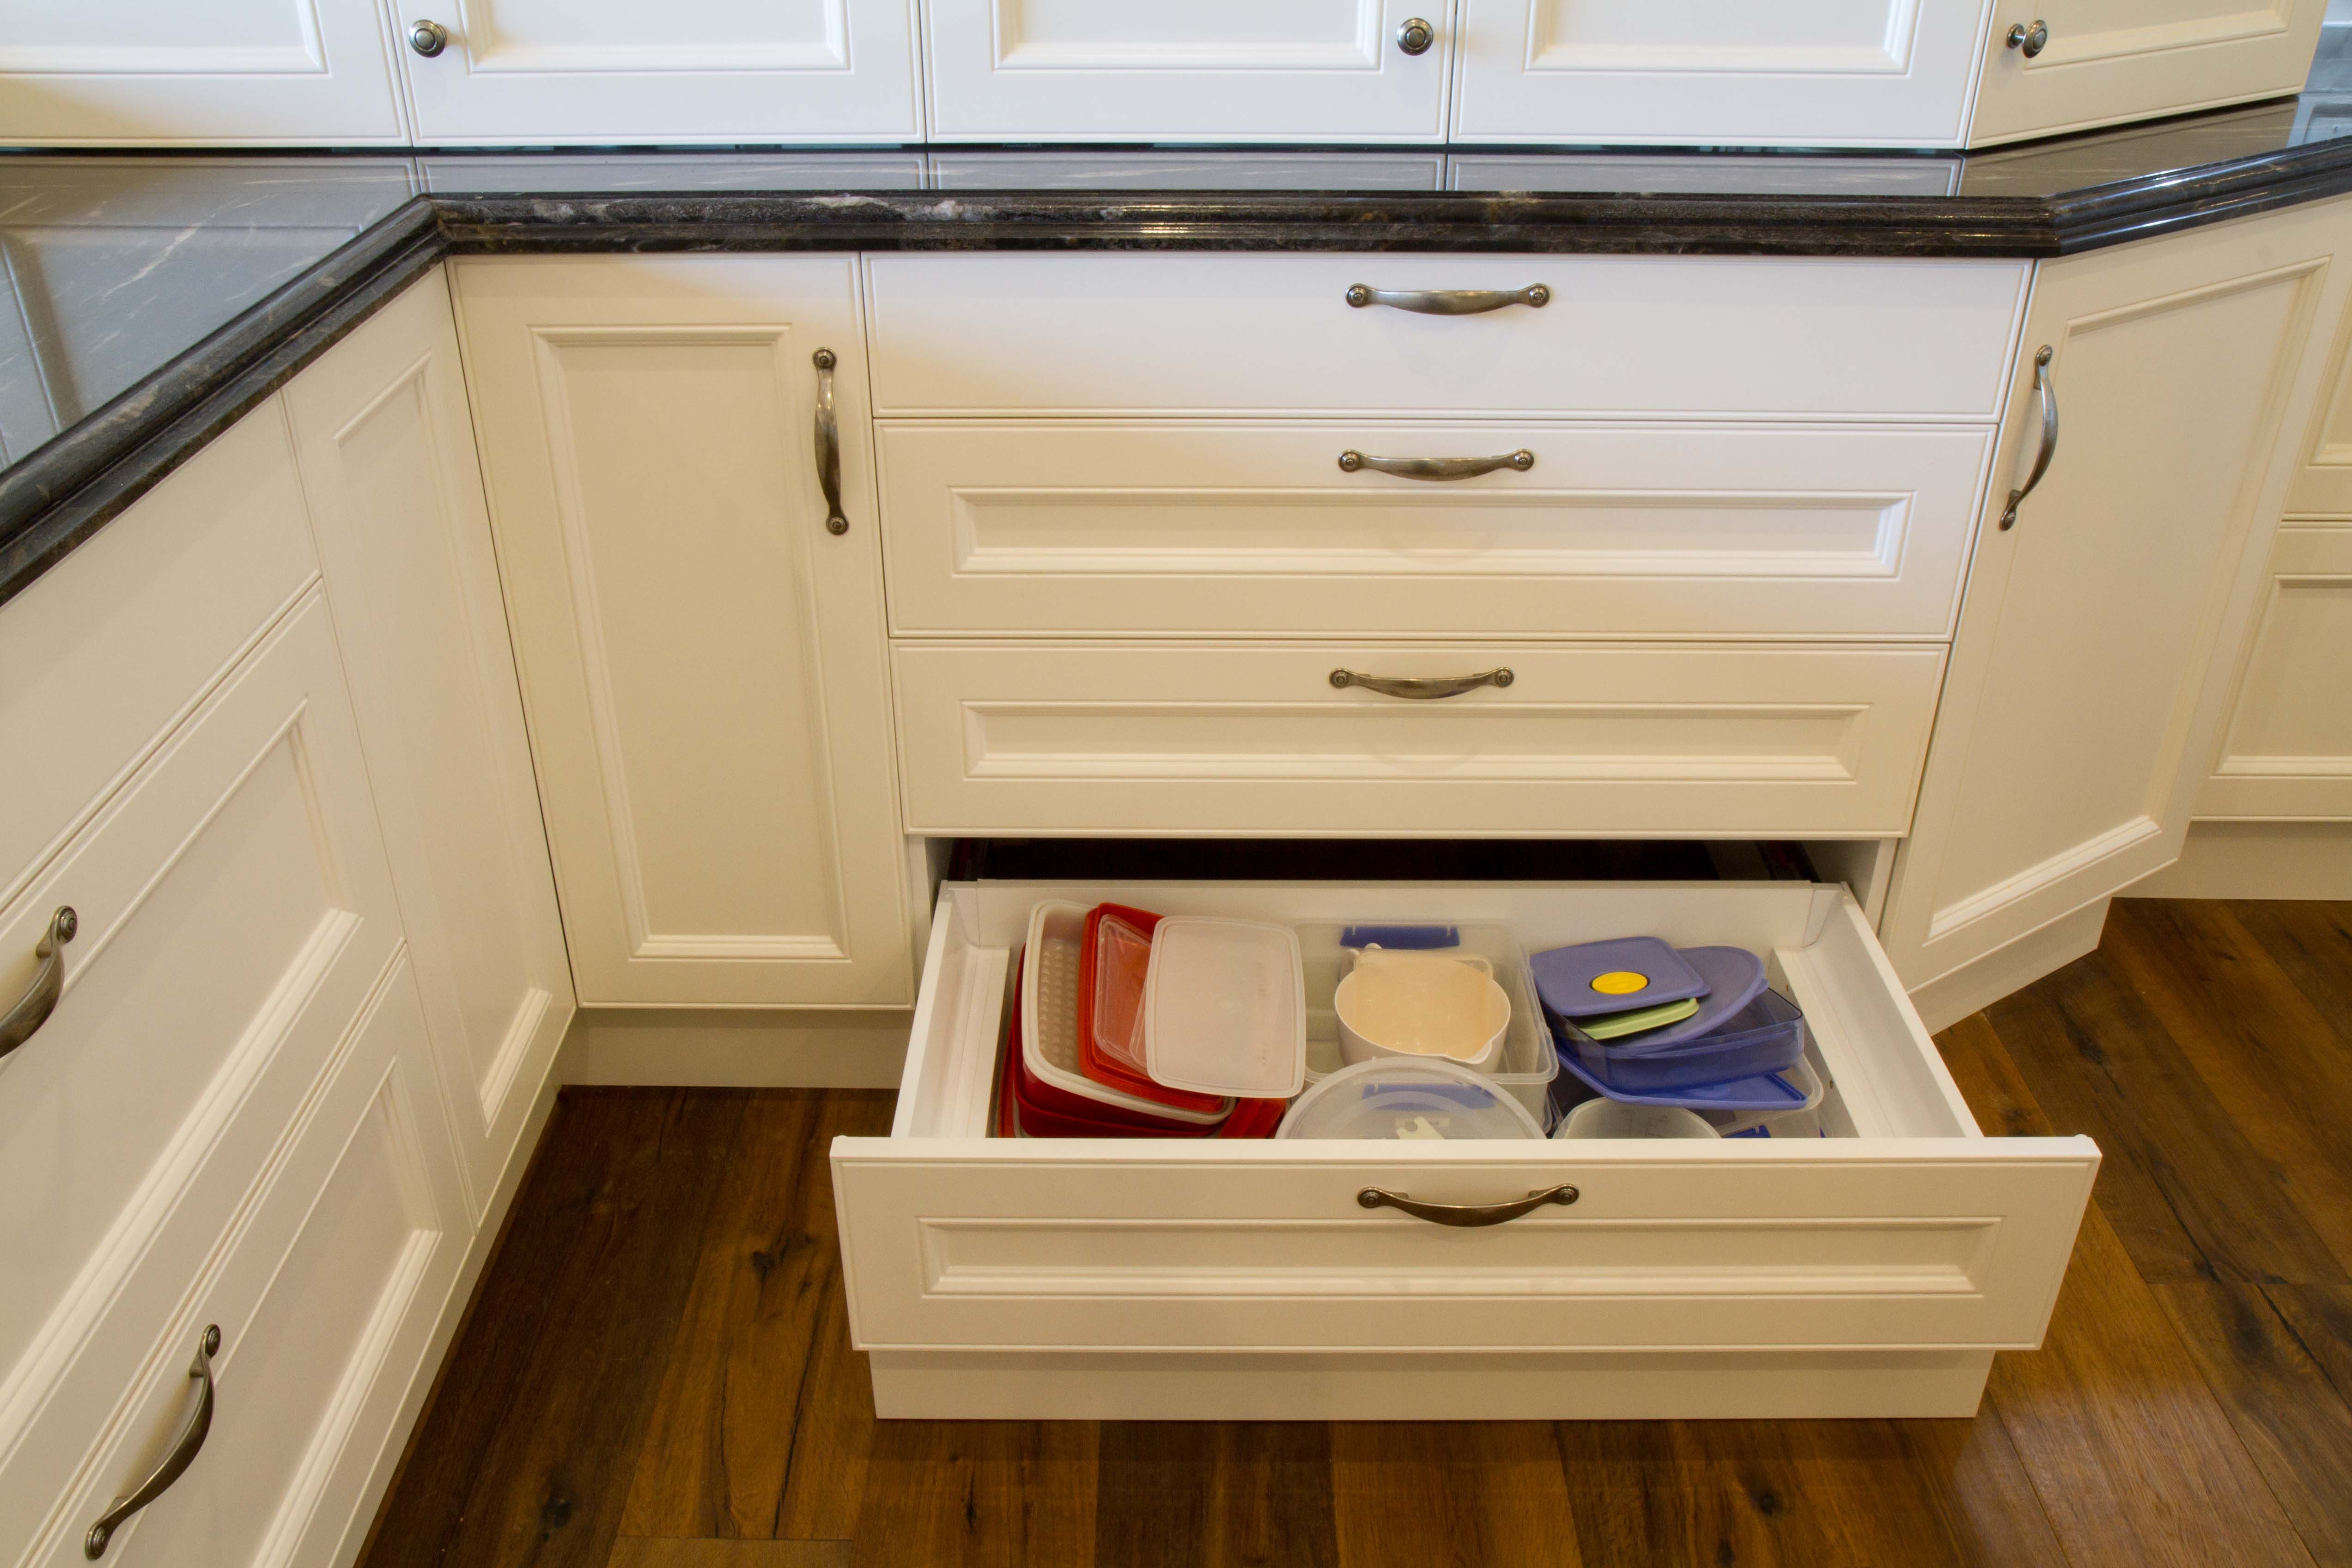 Integrated Kickboard Drawer Allows For Maximum Depth For The Drawer Above.  Www.thekitchendesigncentre.